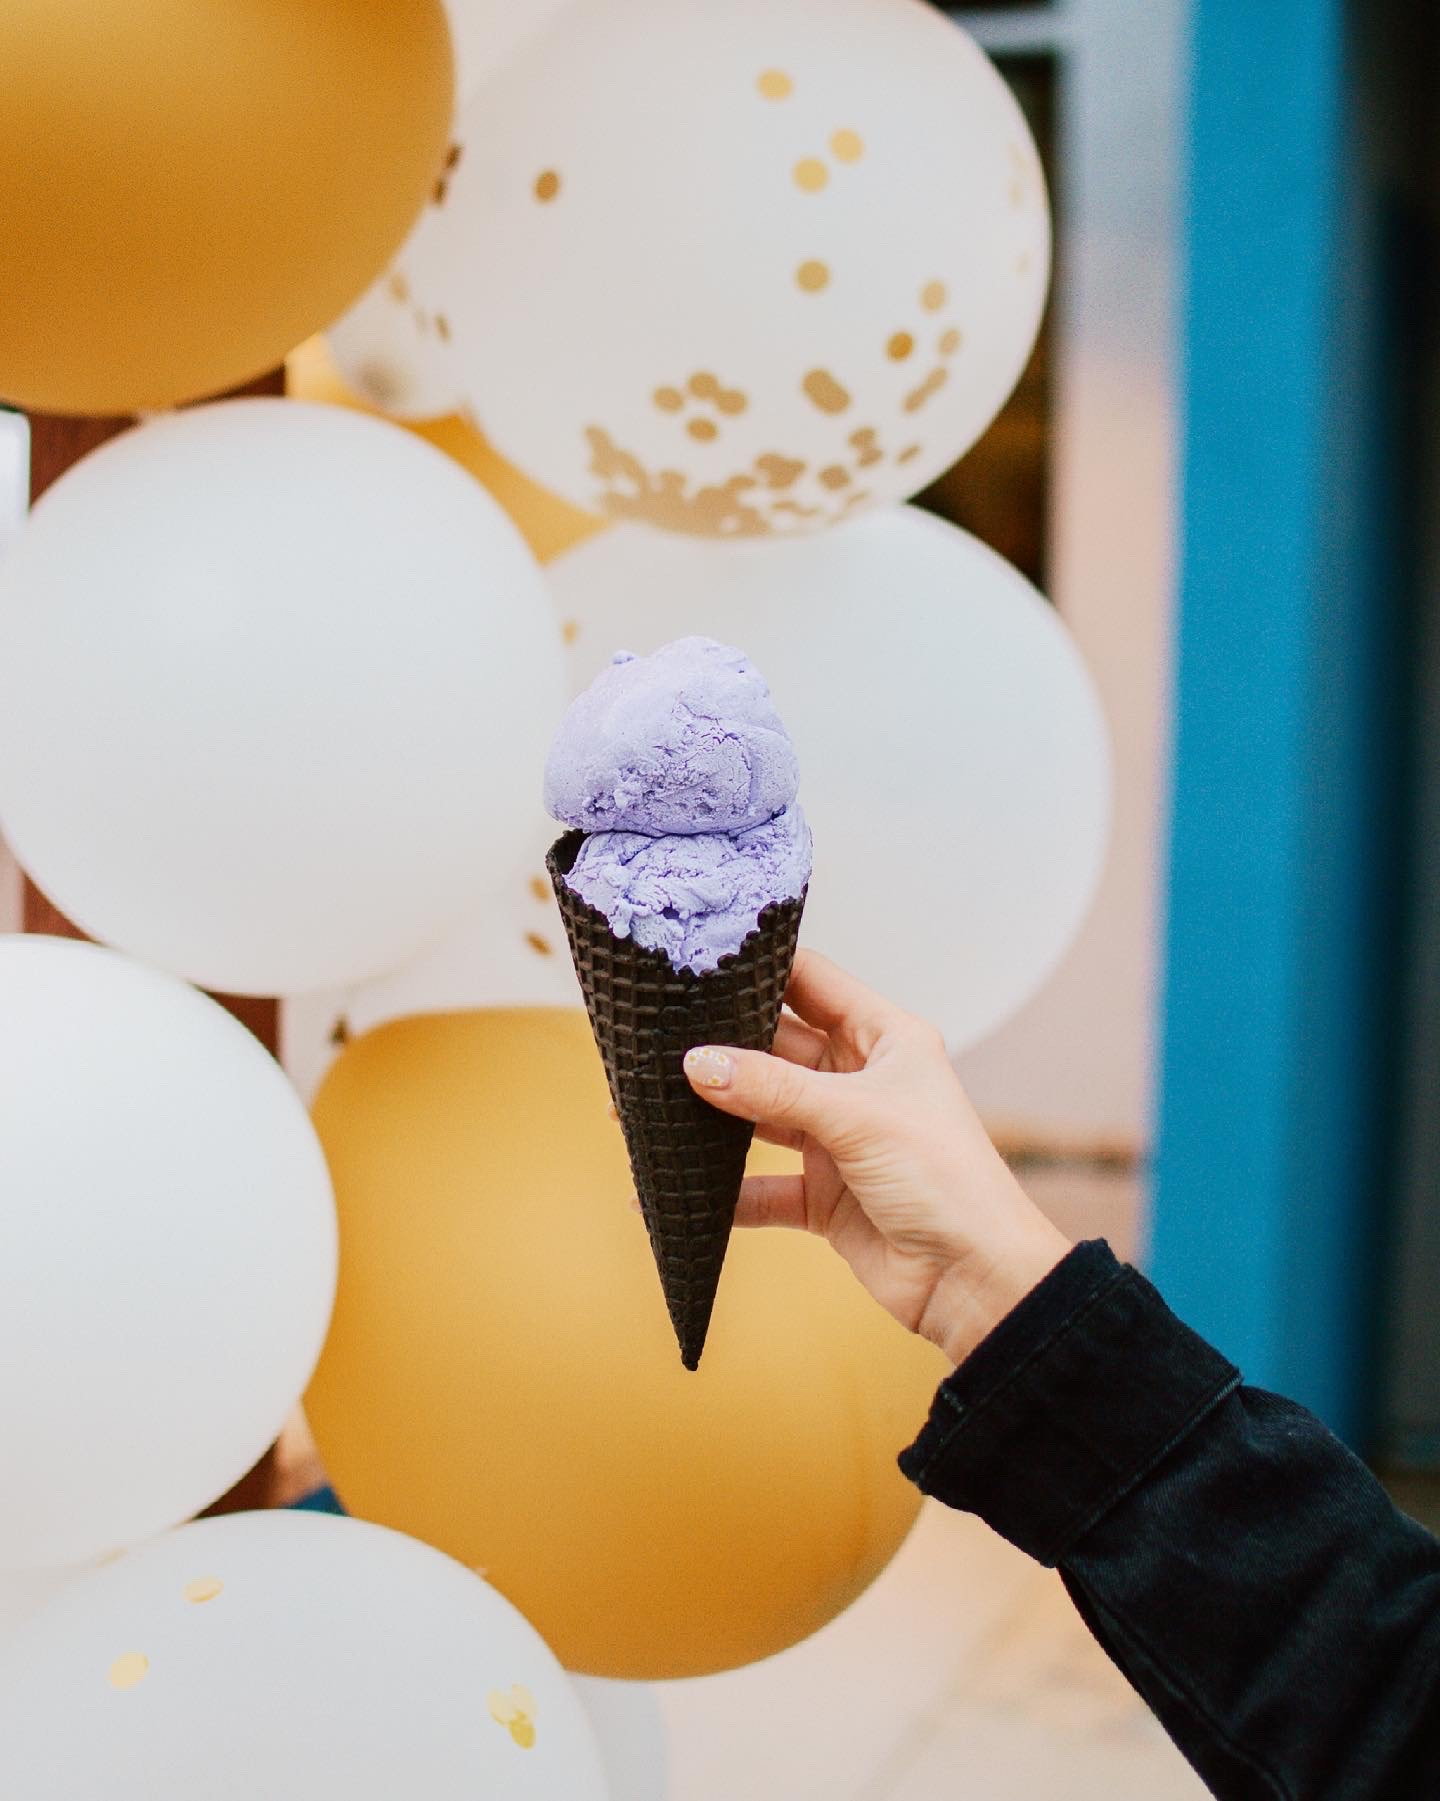 A hand holding a scoop of ice cream in front of balloons